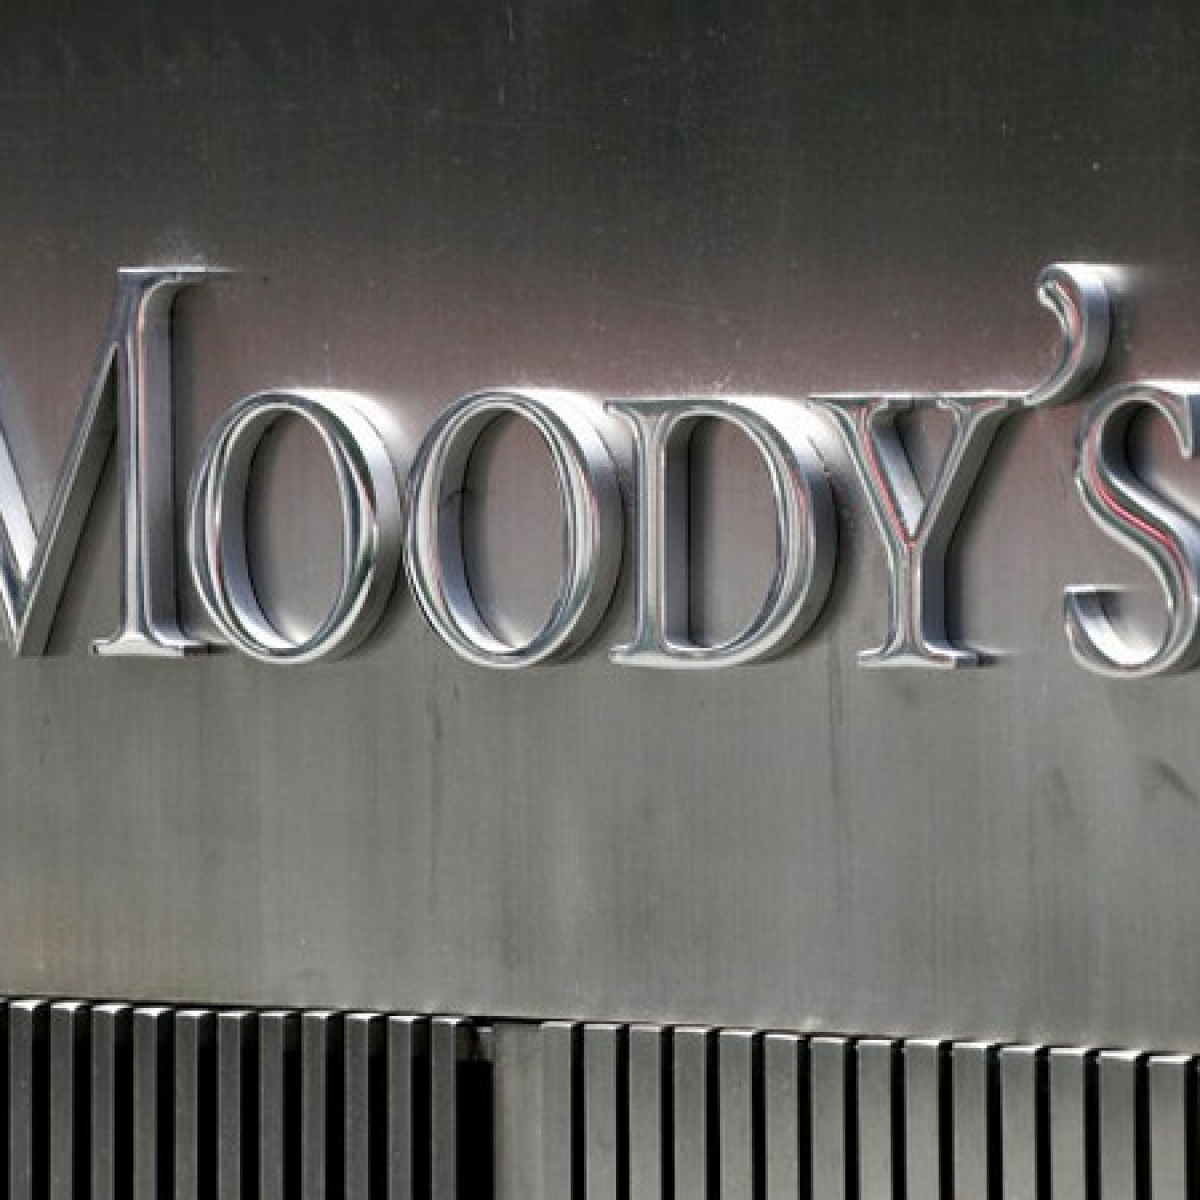 Moody's expresses doubts on higher revenue targets from tax, divestment